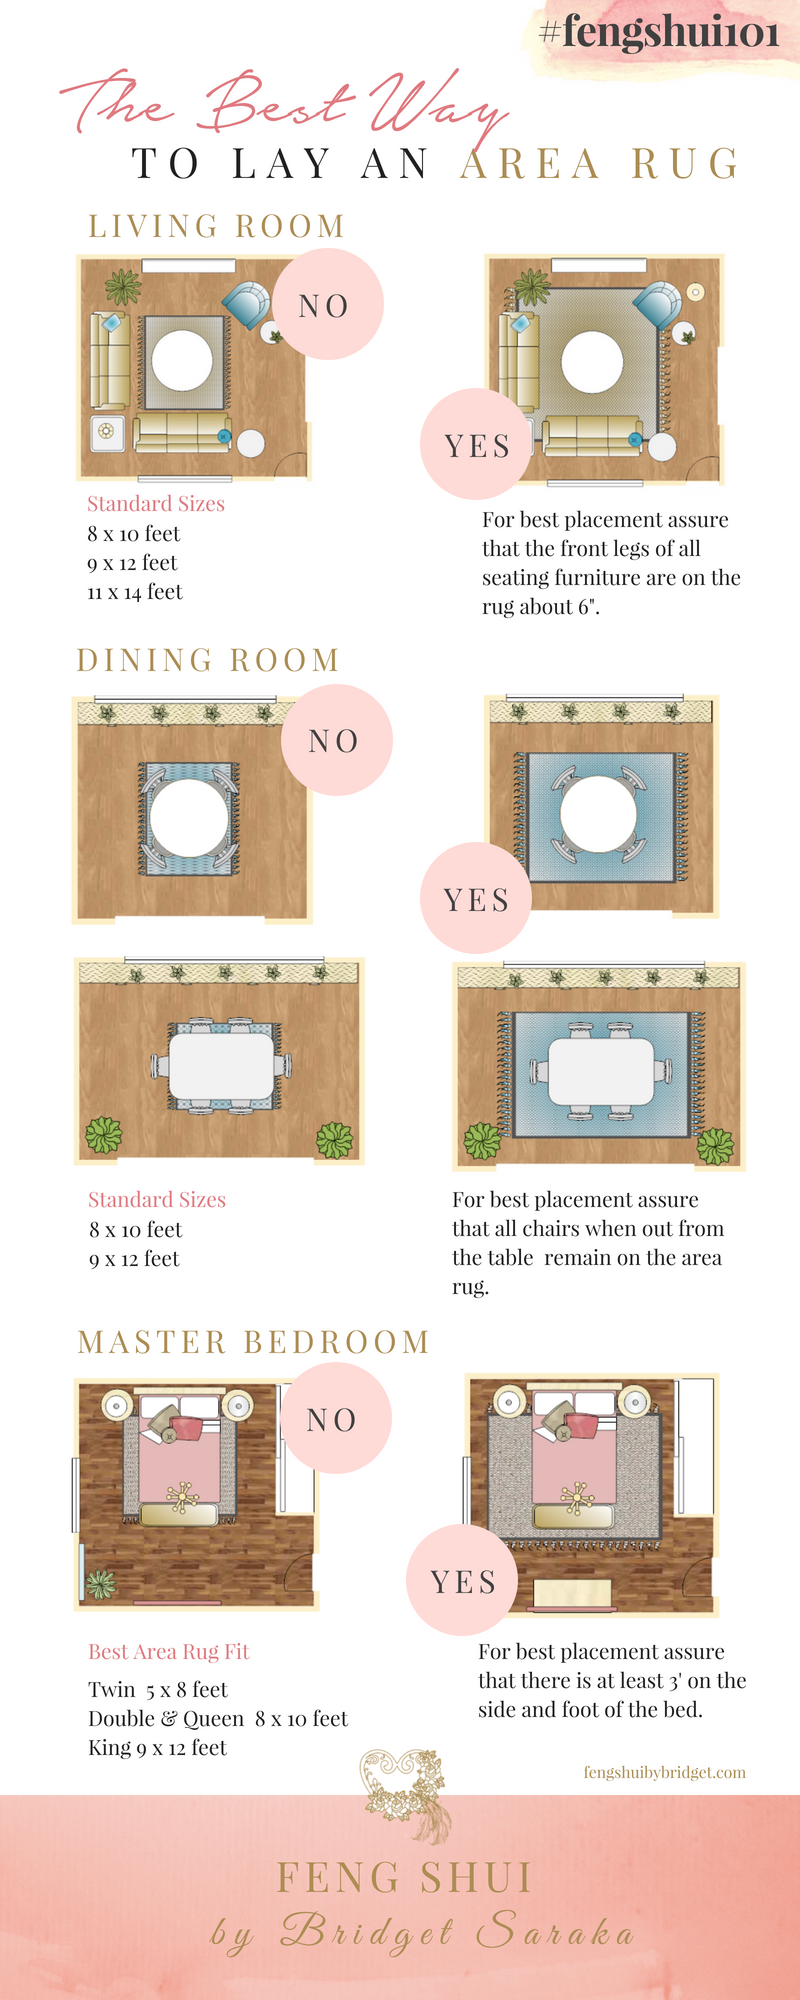 The Best Way To Lay An Area Rug Fengshui101 Feng Shui Living